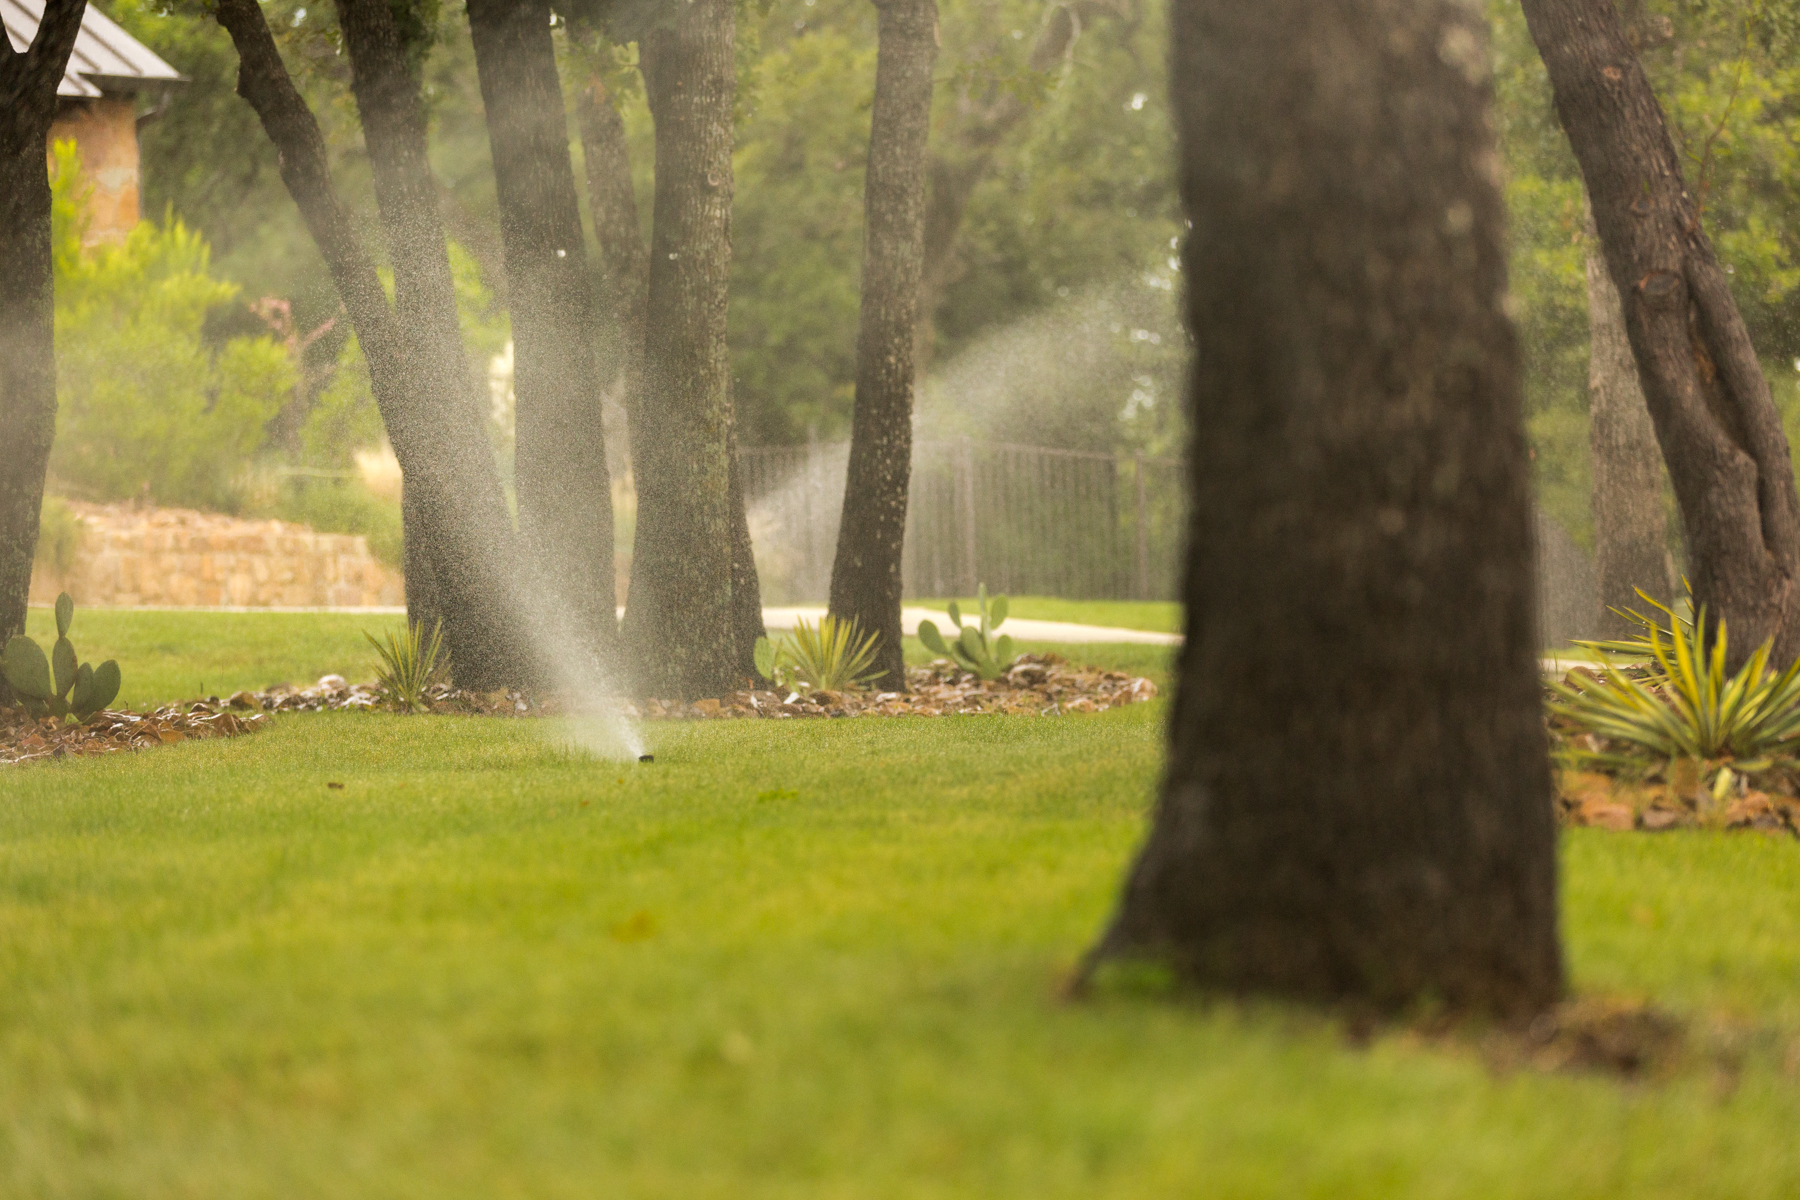 Most Frequently Asked Questions About Sprinkler Systems in North Texas